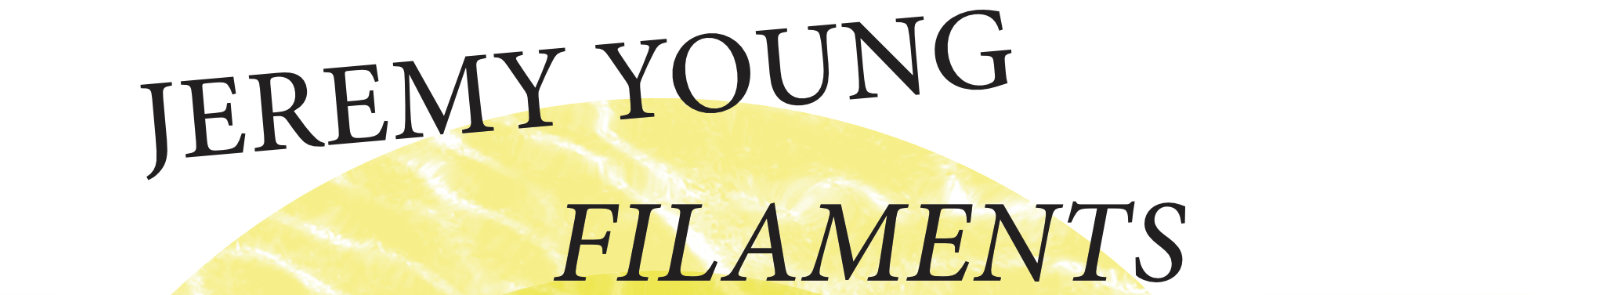 Jeremy Young - Filaments